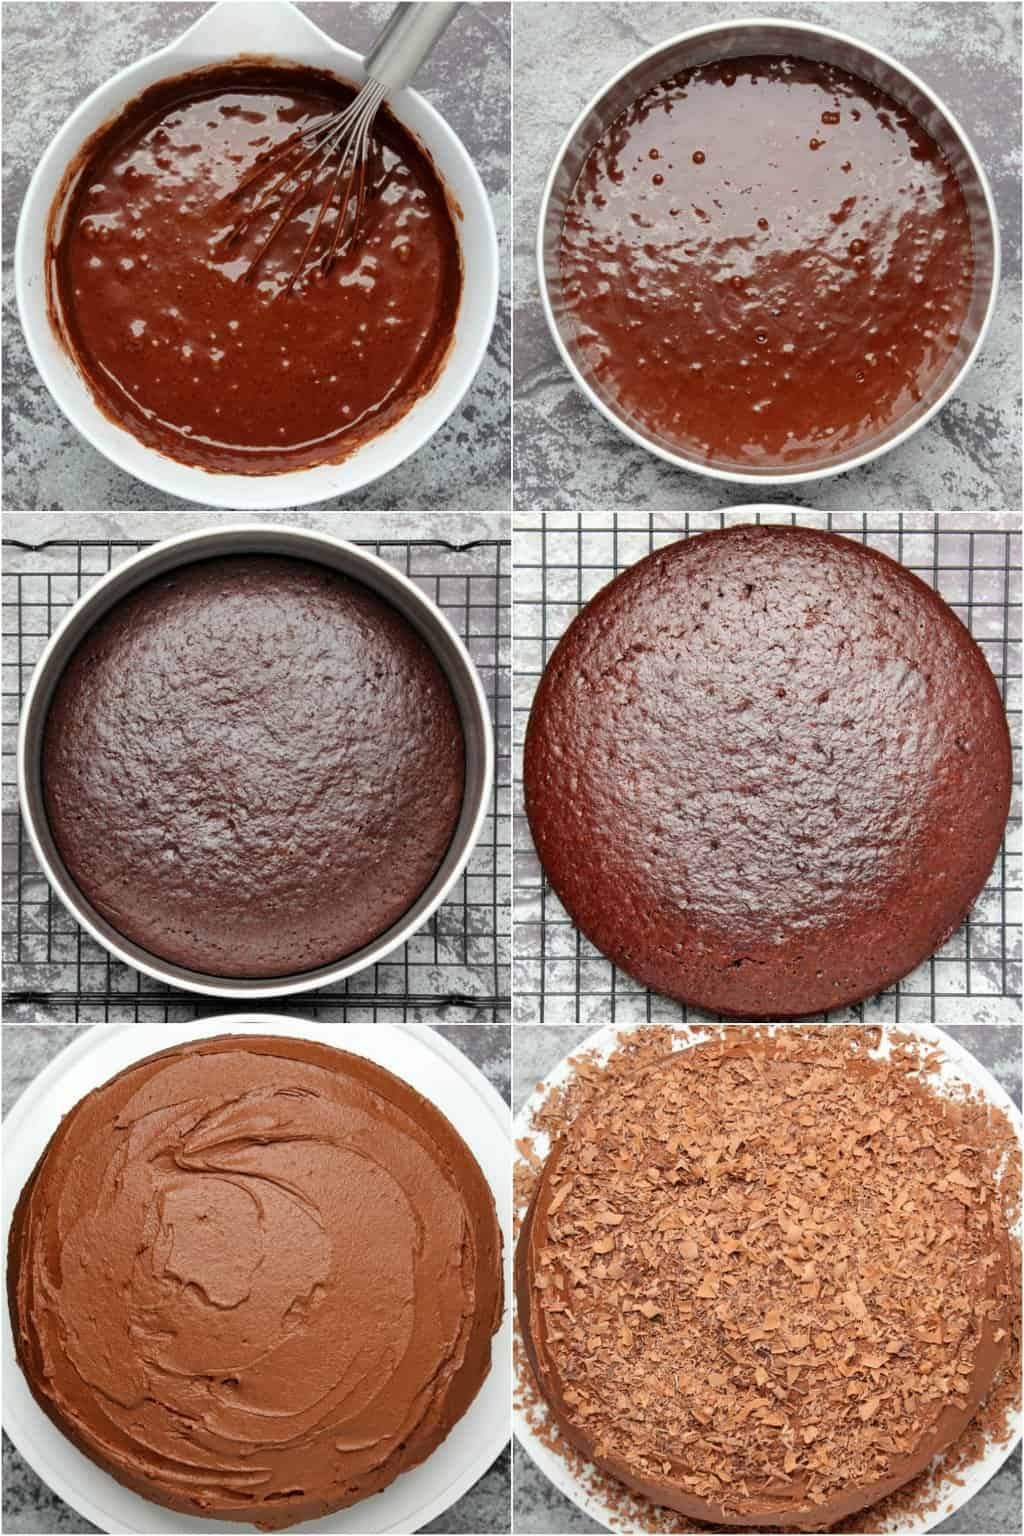 Step by step process photo collage of making vegan chocolate cake.